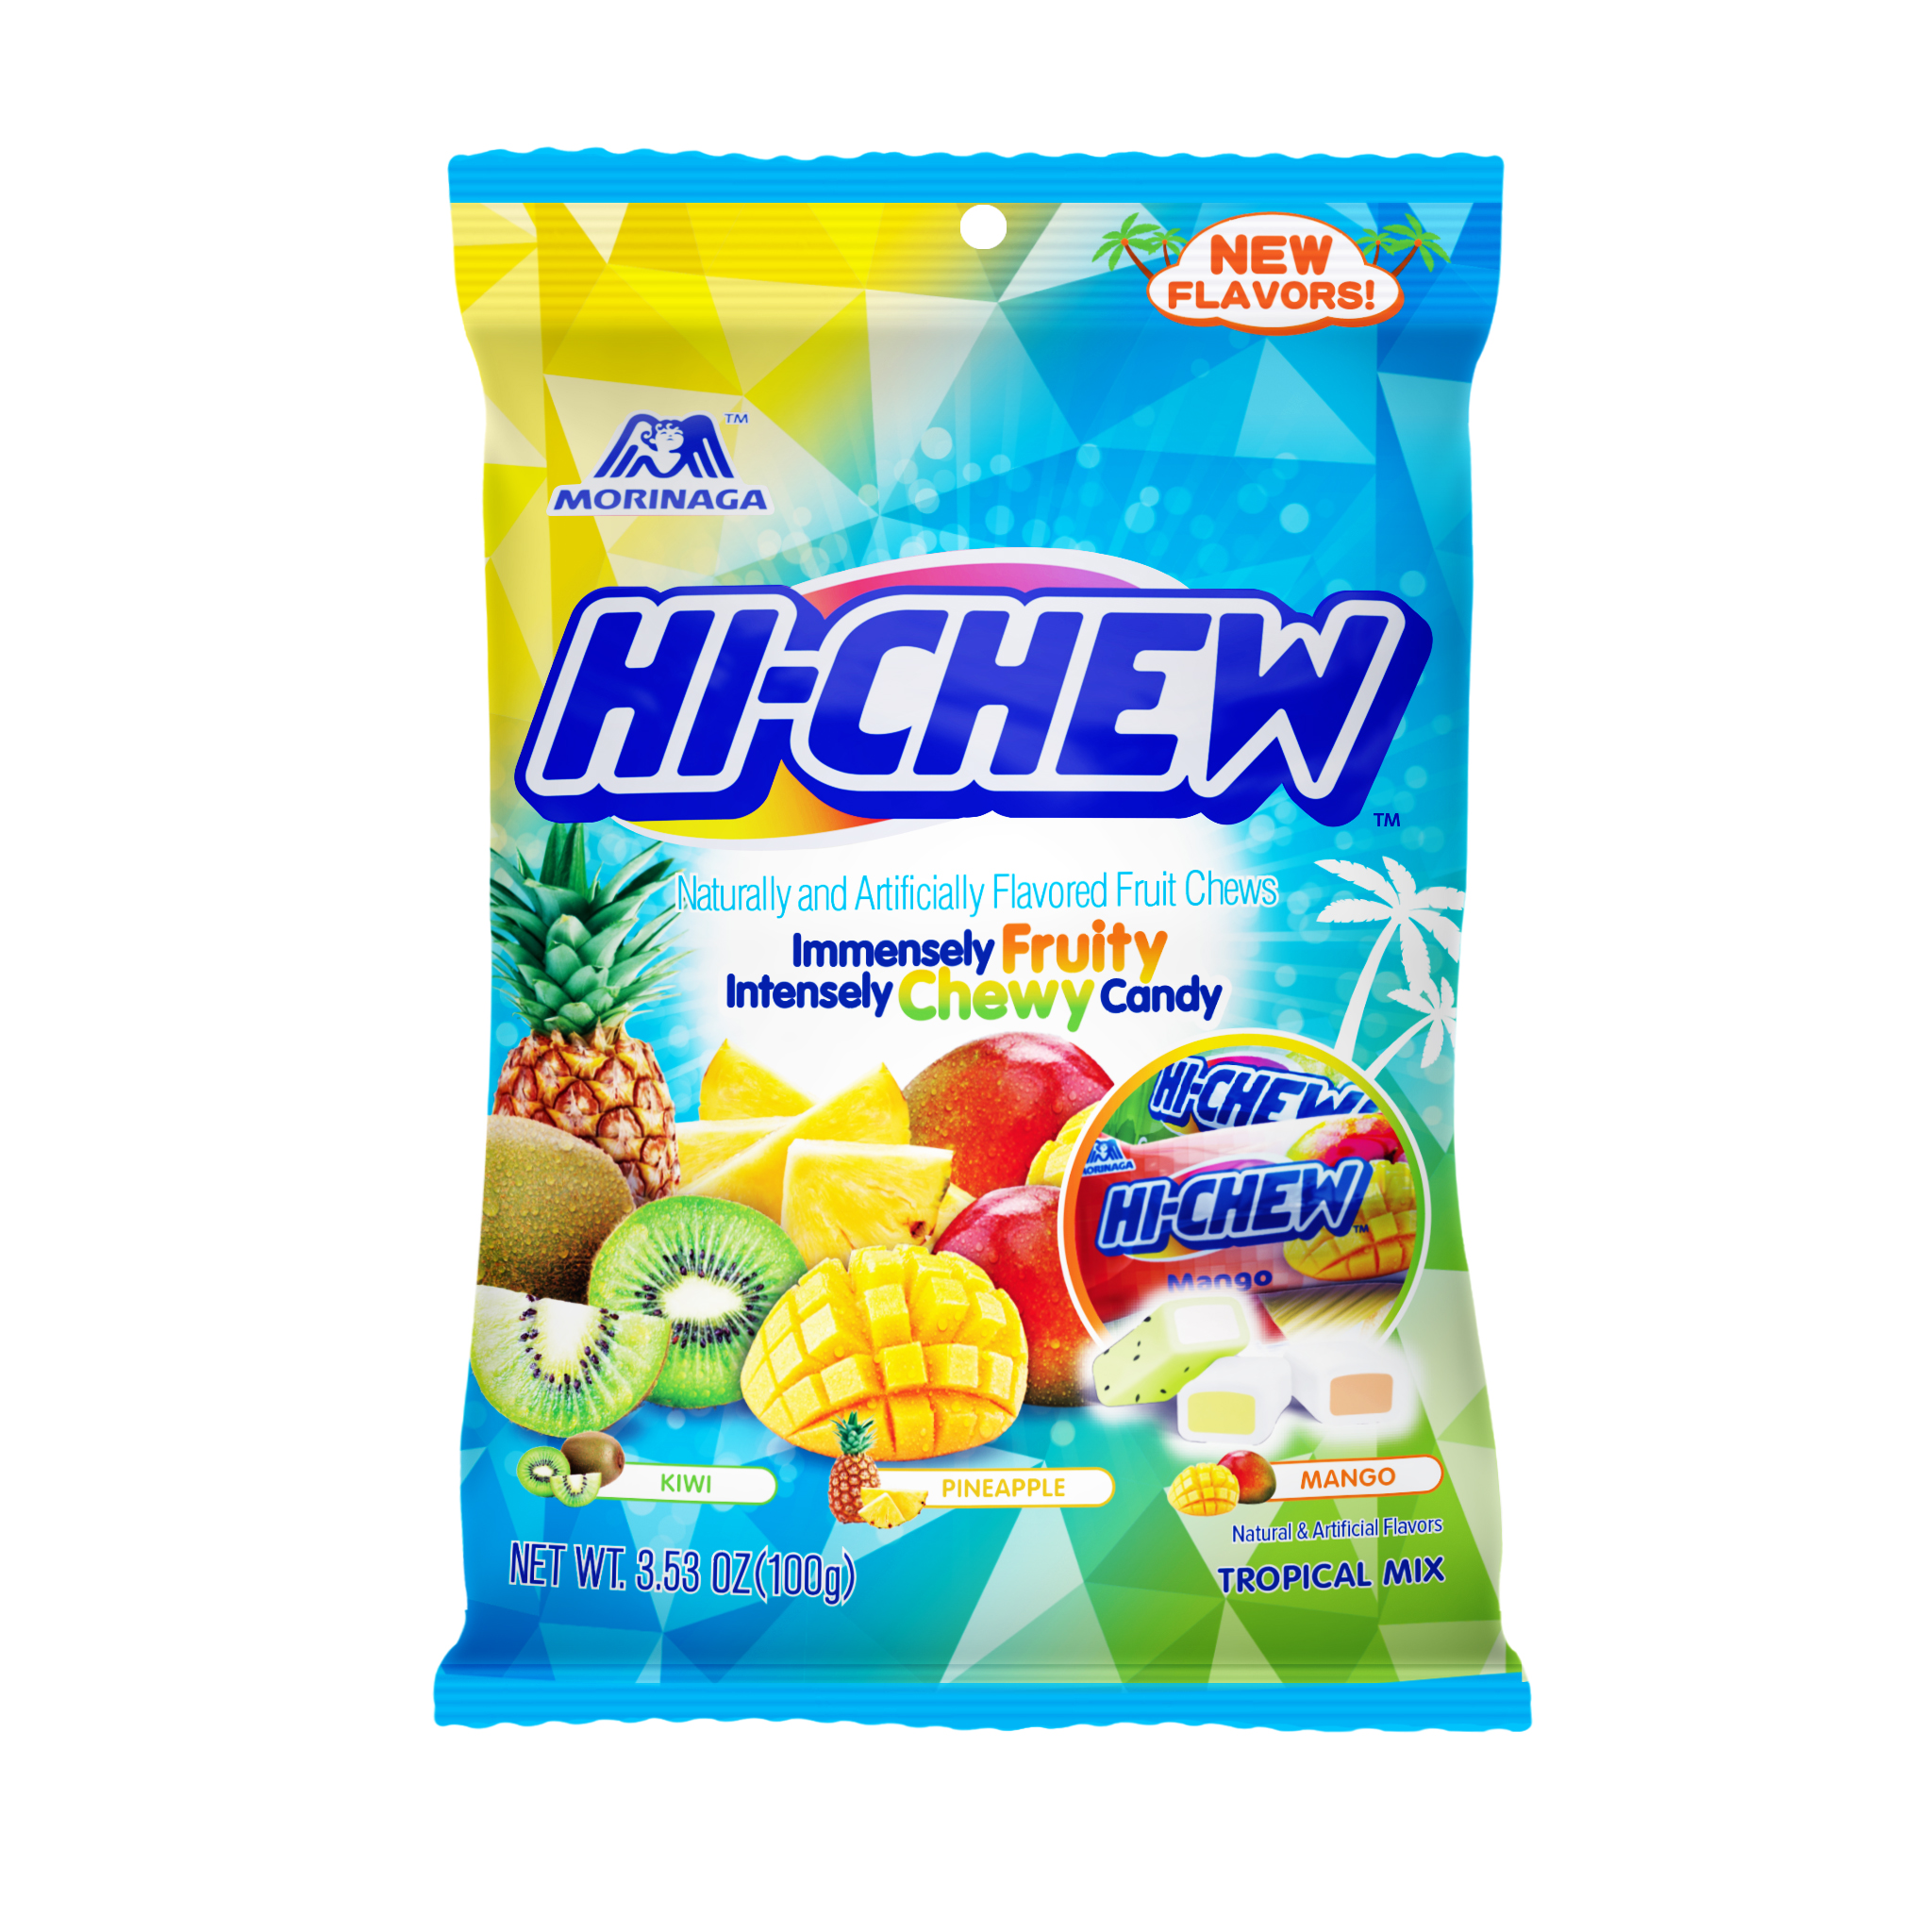 HI-CHEW Mango/Banana/Melon Fruit Chews, 3.53 oz